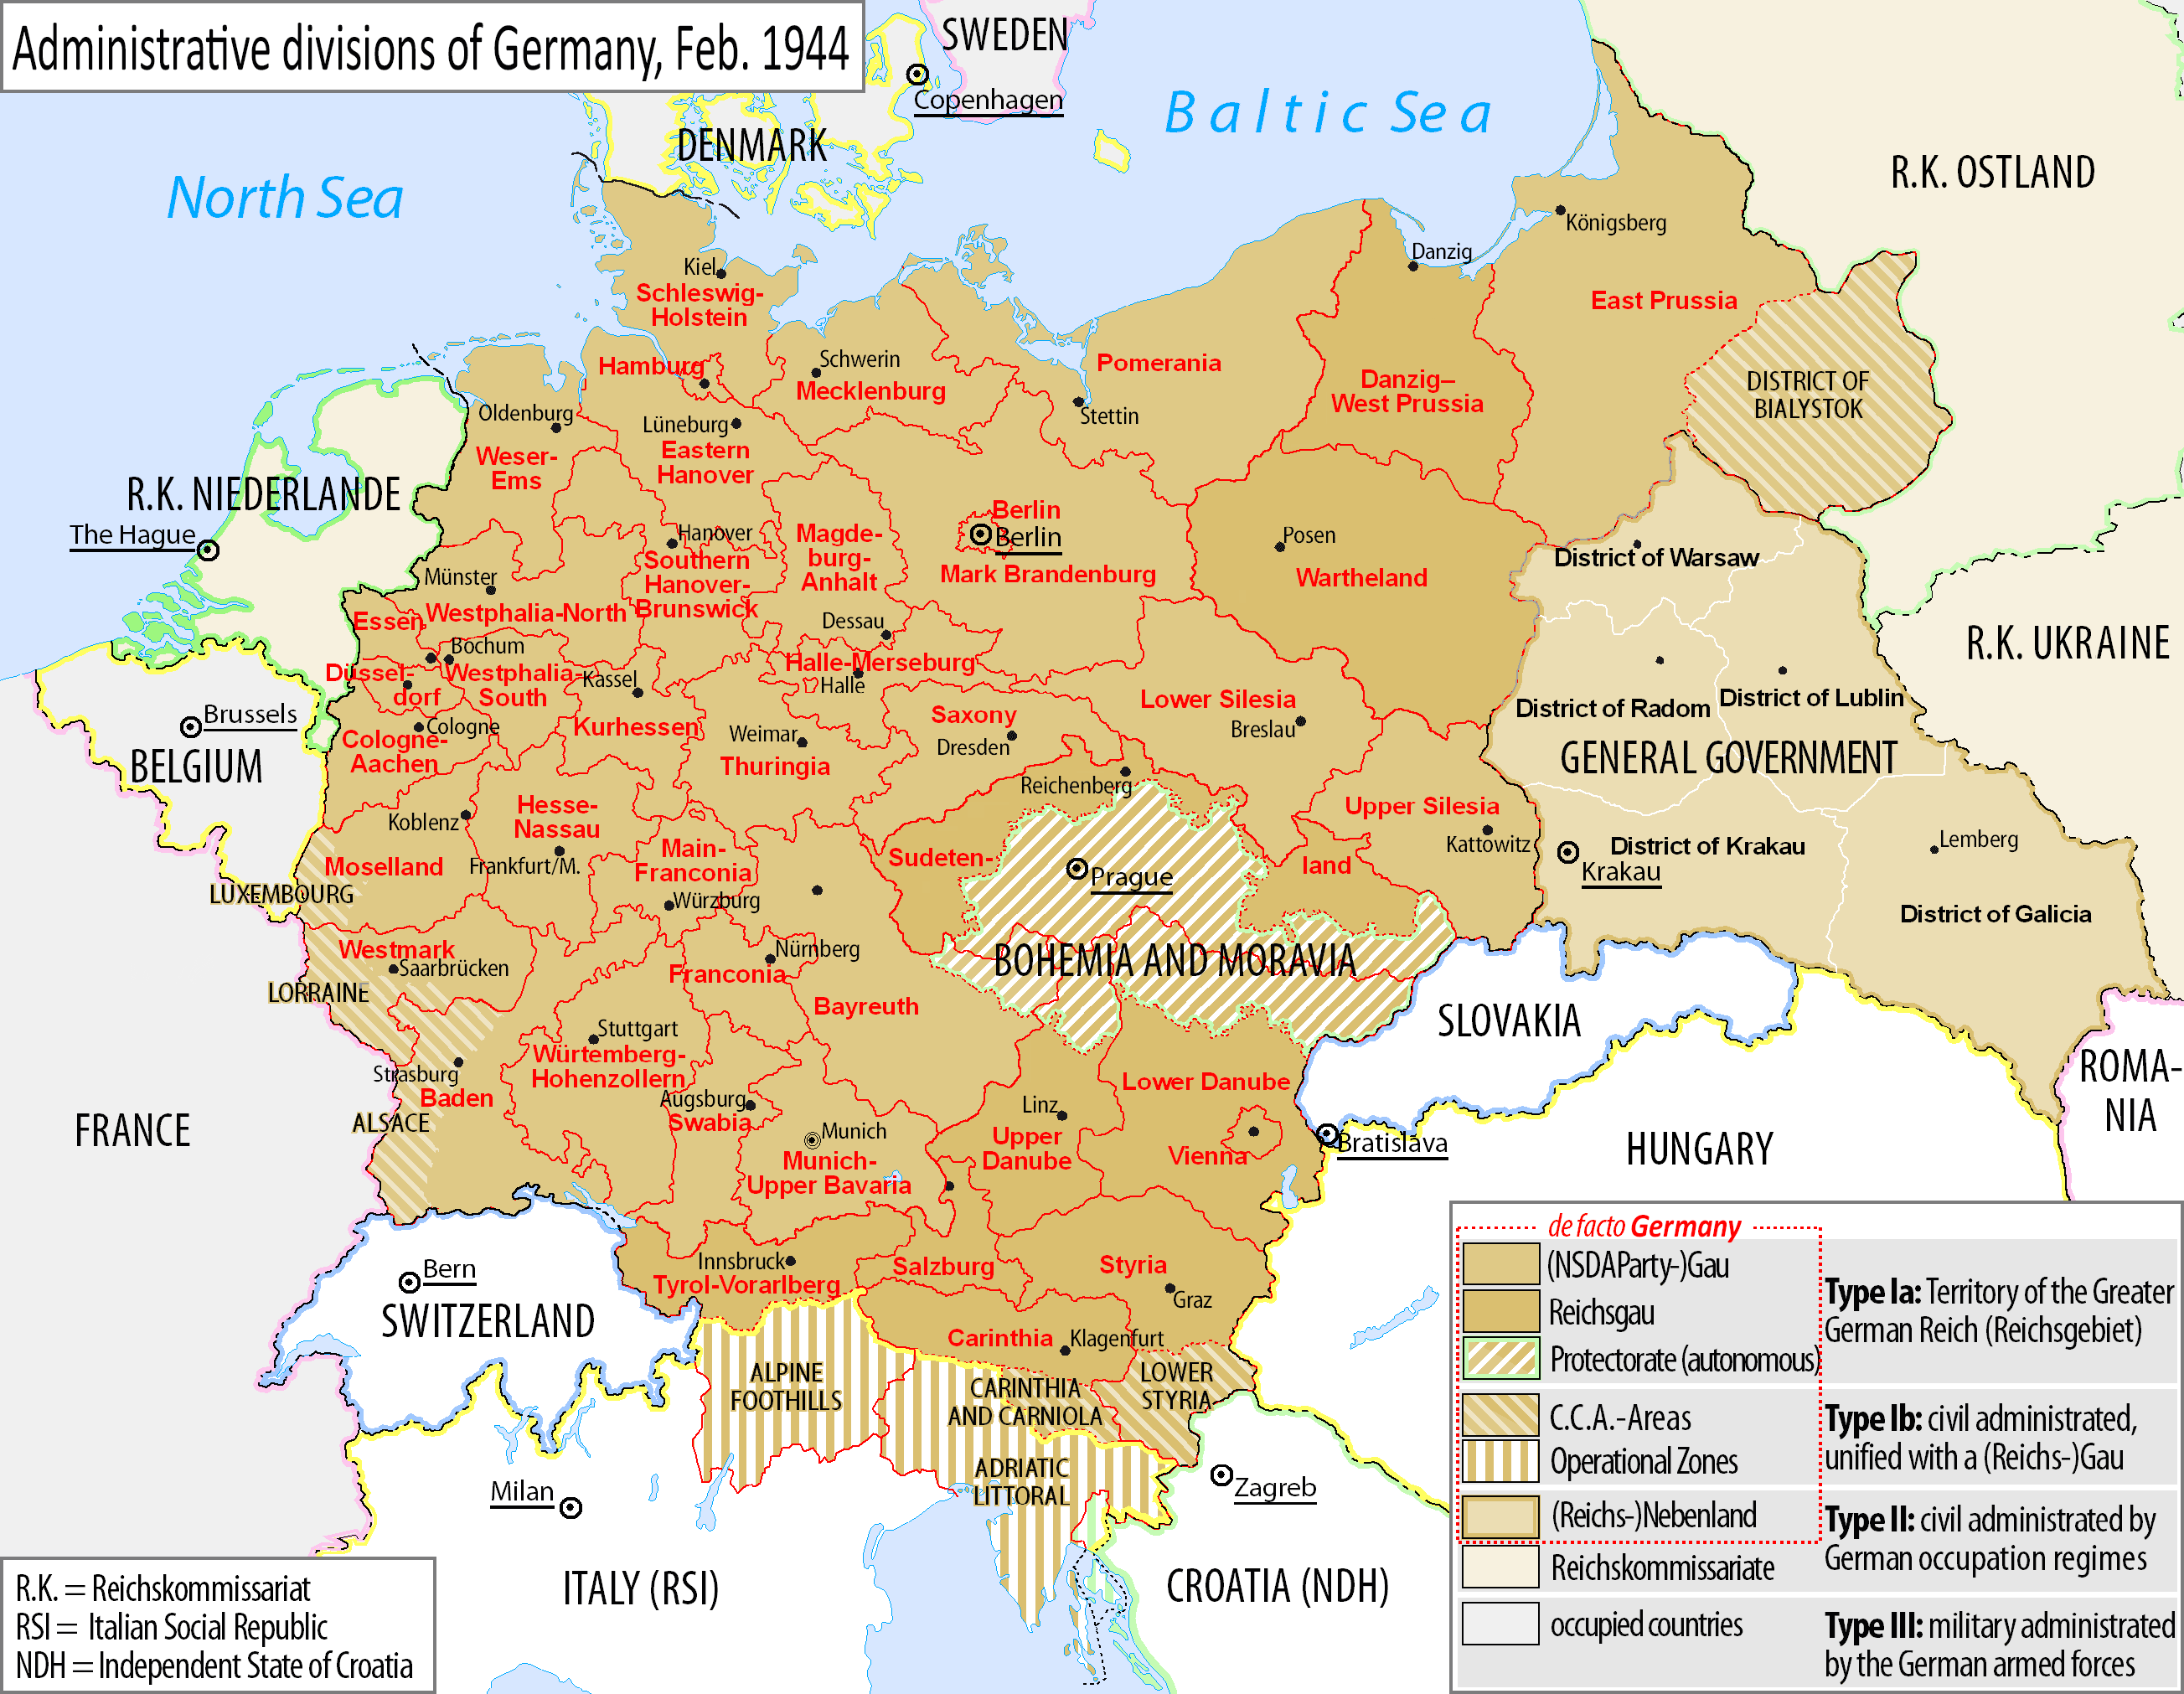 maps of usa with cities with File Administrative Divisions Of Germany  February 1944 on 42 Mind Blowing Maps Have Missed The World Atlas moreover File Administrative divisions of Germany  February 1944 additionally Large Regions Map Of Maryland State also Nigeria Political Map in addition Europe Political Map.